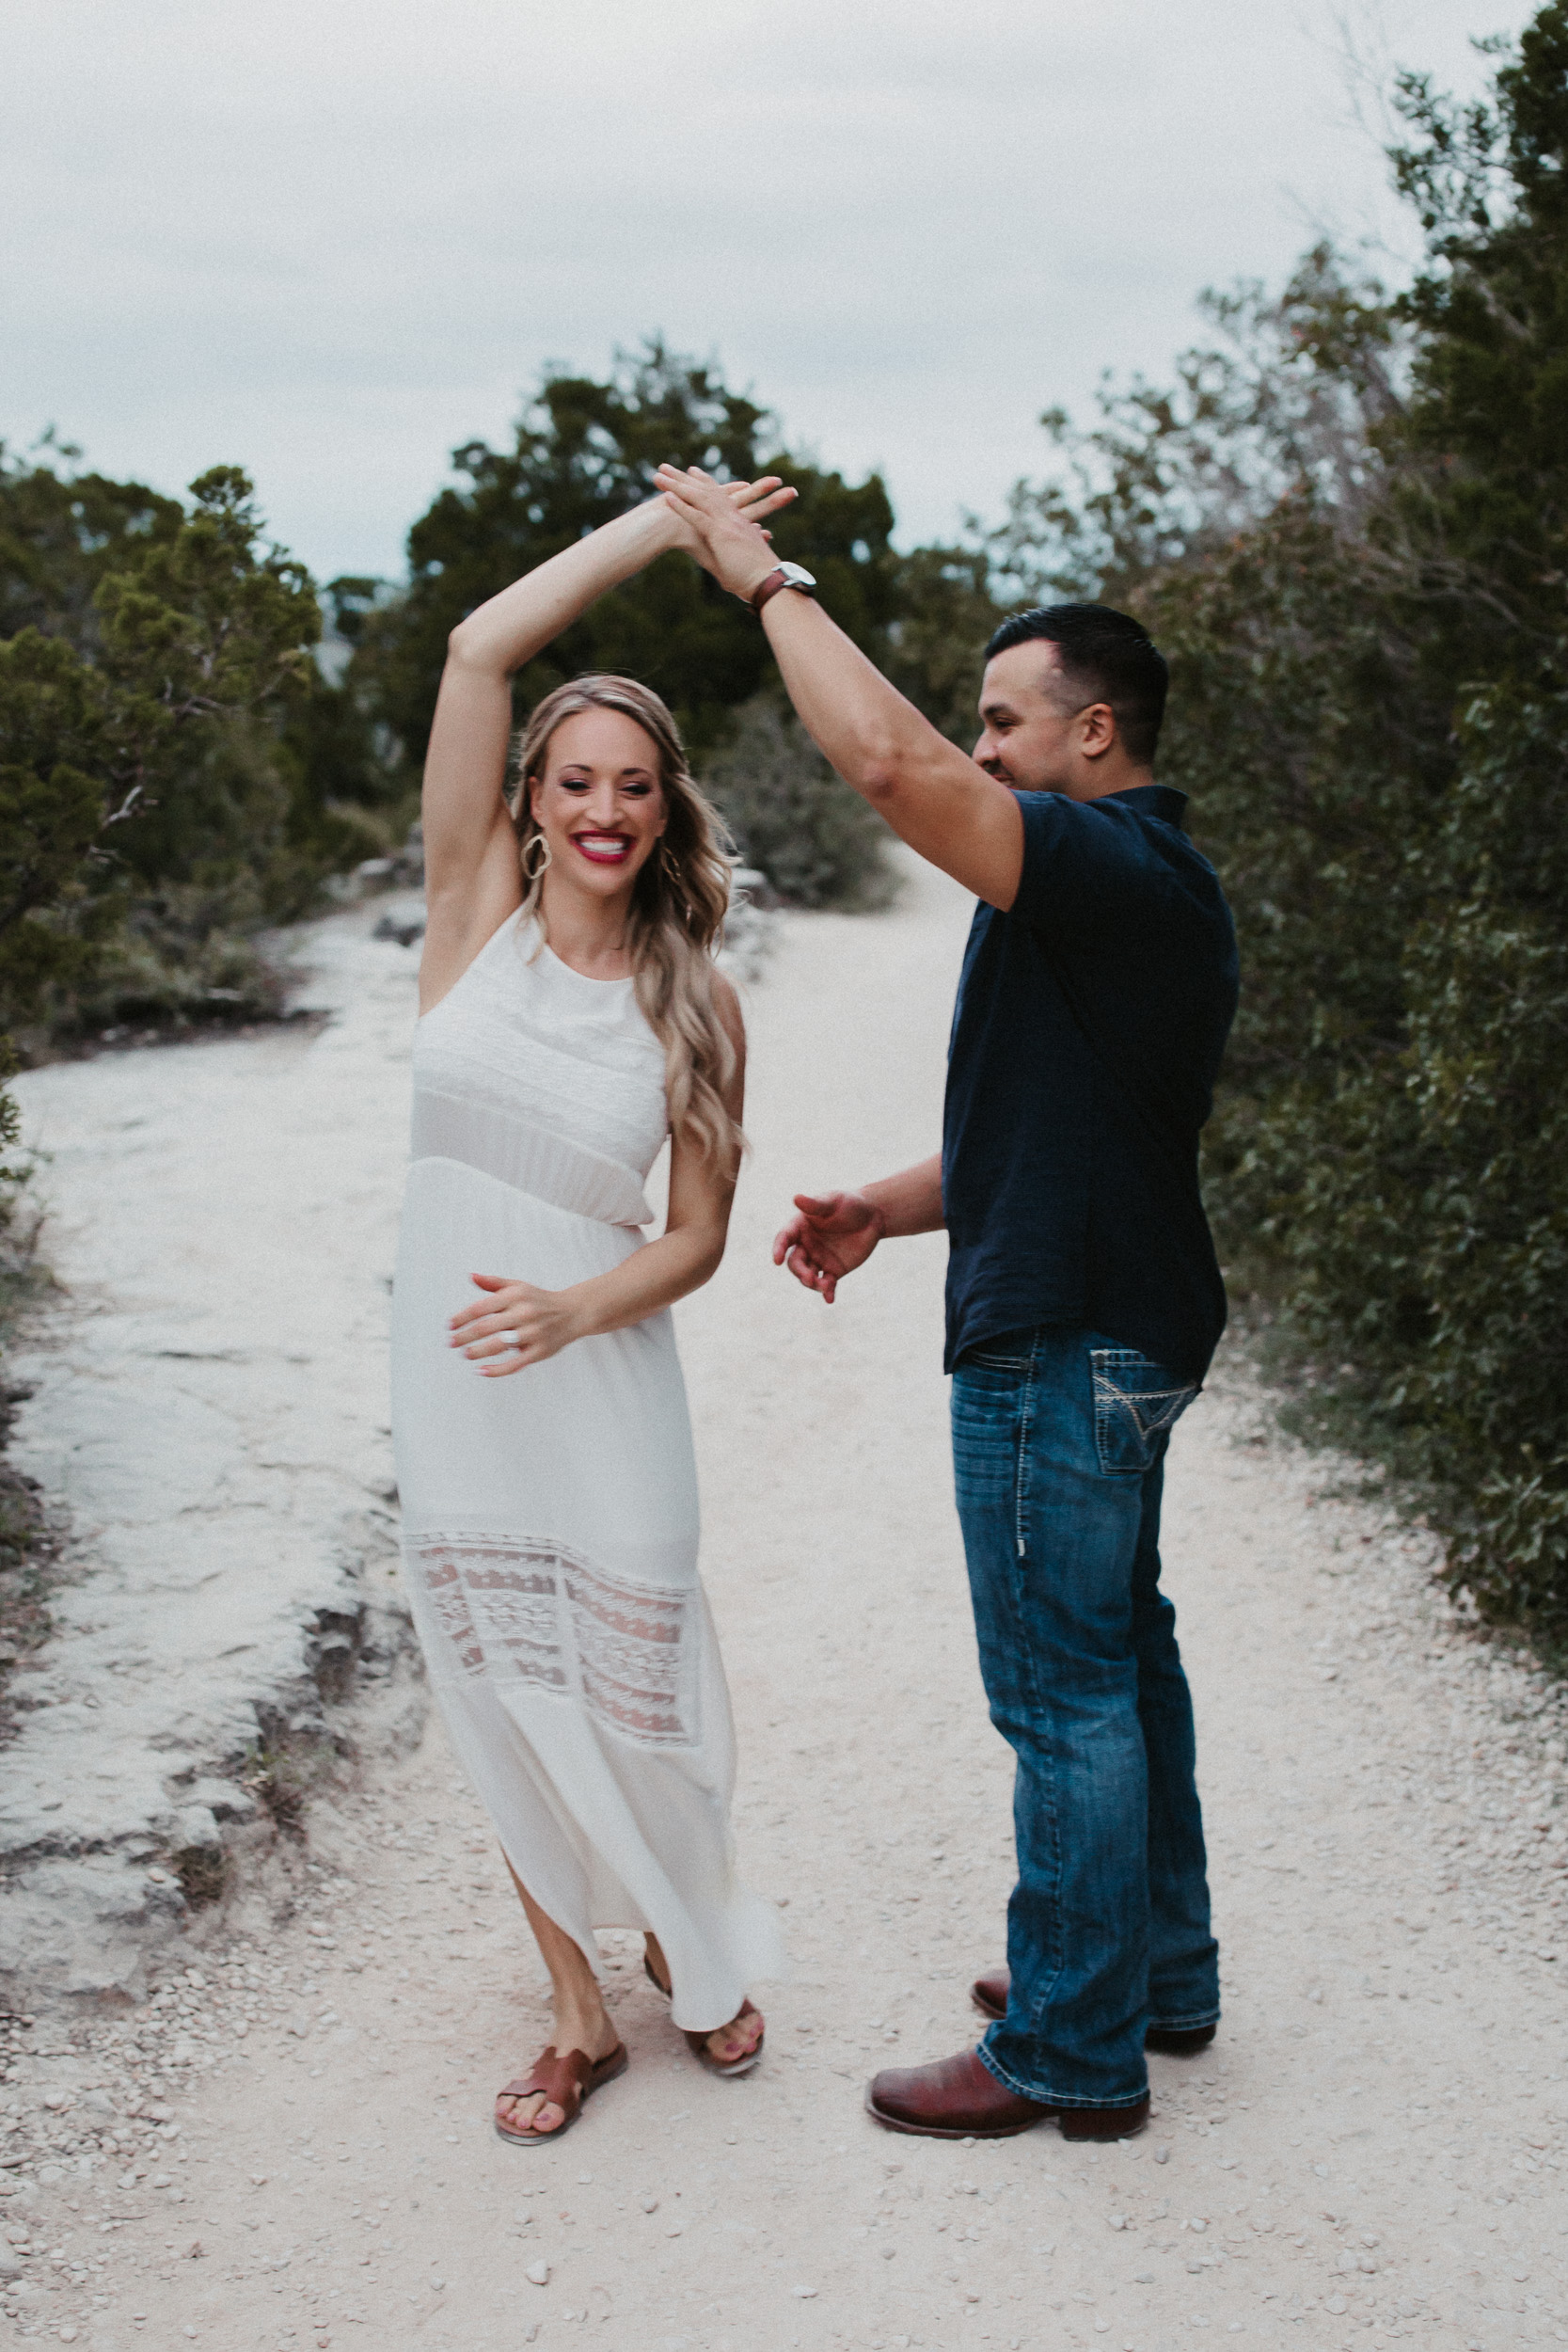 liz-stephen-engagement-mount-bonnell-austin-texas-025.jpg